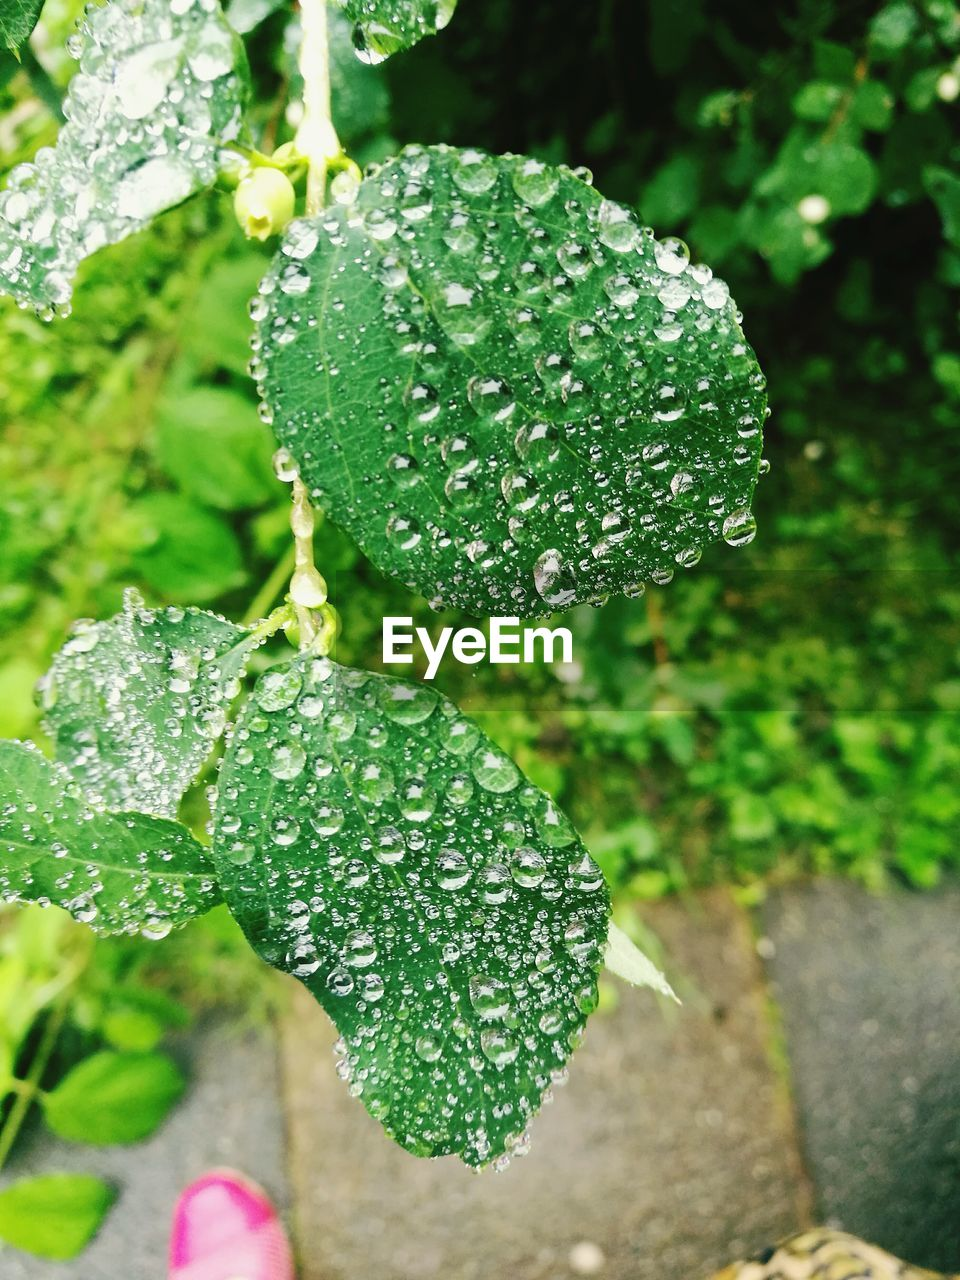 drop, green color, growth, water, wet, nature, close-up, freshness, leaf, beauty in nature, day, raindrop, outdoors, plant, no people, fragility